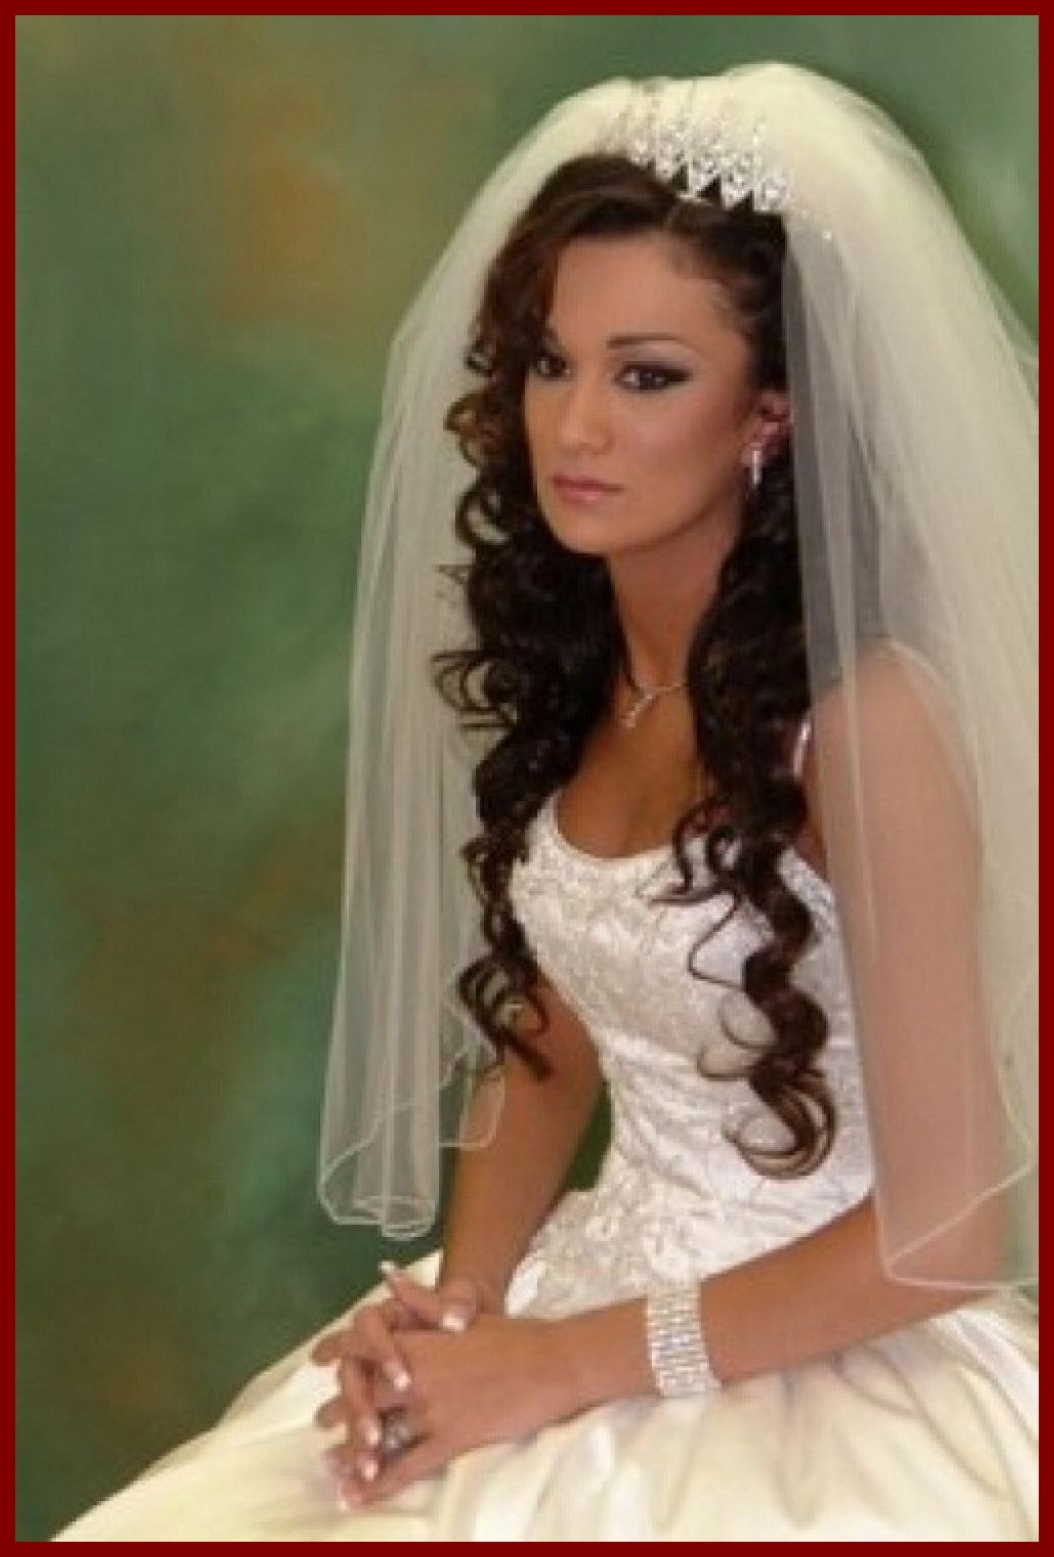 Amazing Wedding Hairstyles Updo With Veil And Image For Long Hair Regarding Current Wedding Updos For Long Hair With Tiara (View 2 of 15)